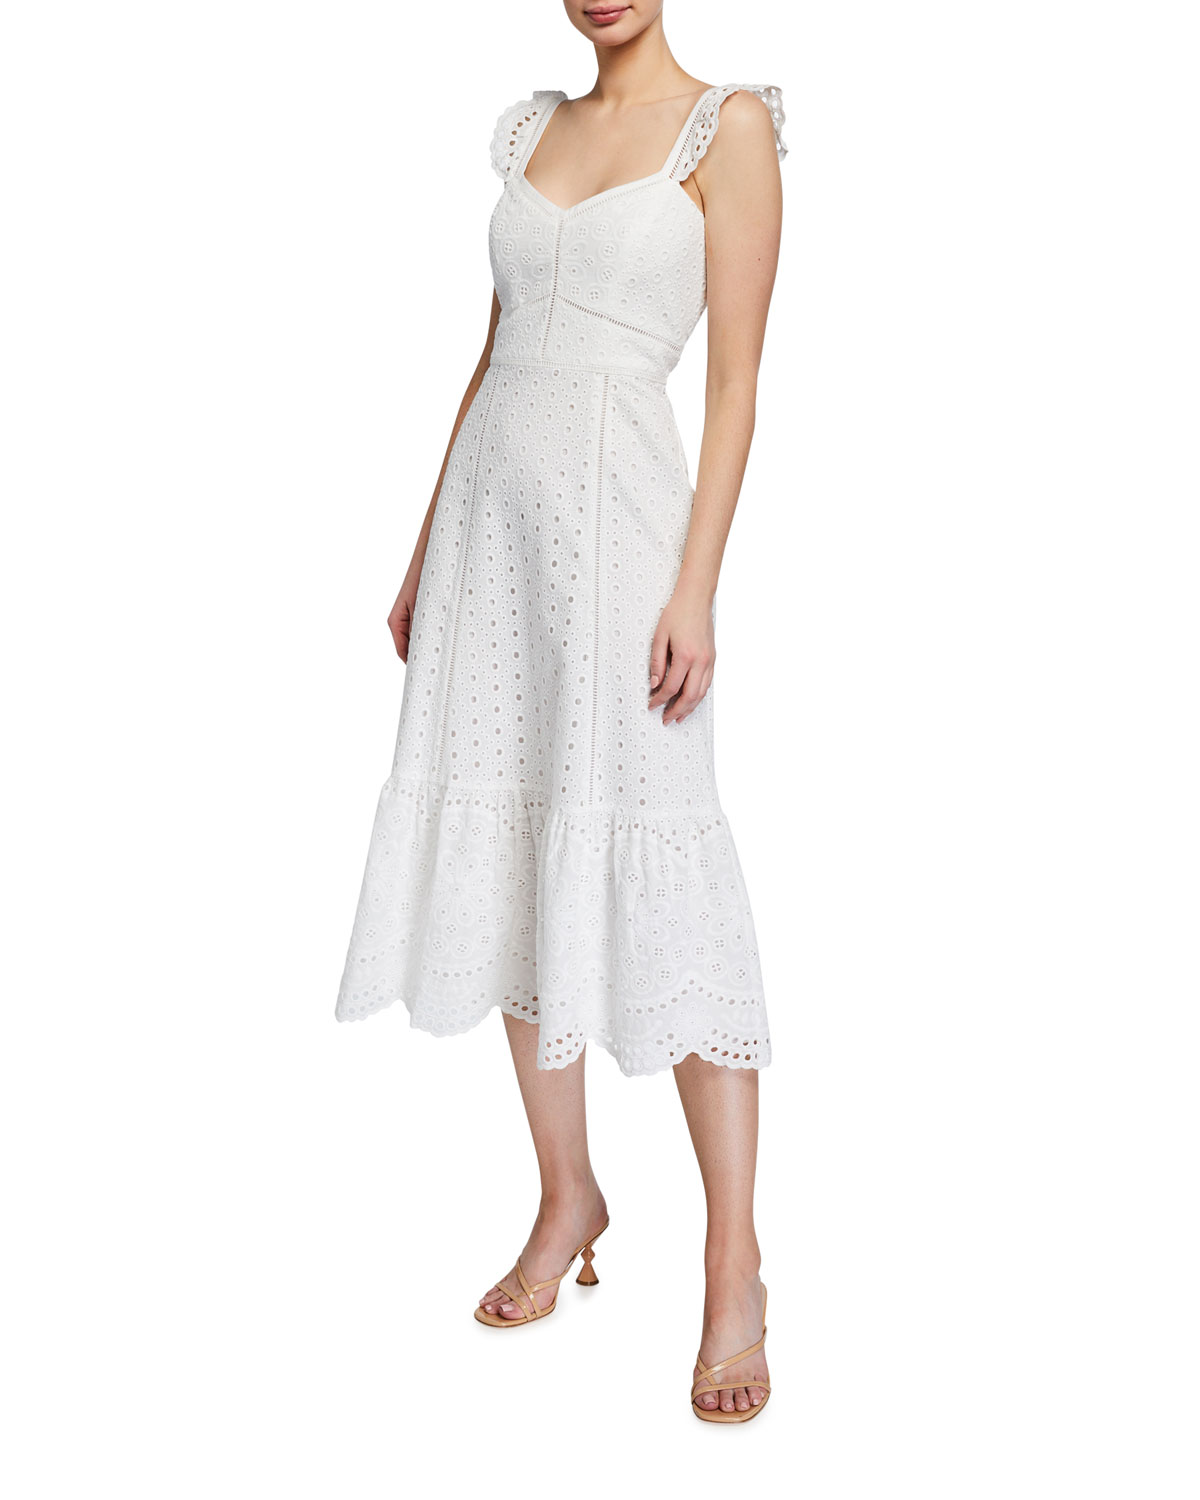 Parker Genevieve Scalloped Eyelet Midi Dress